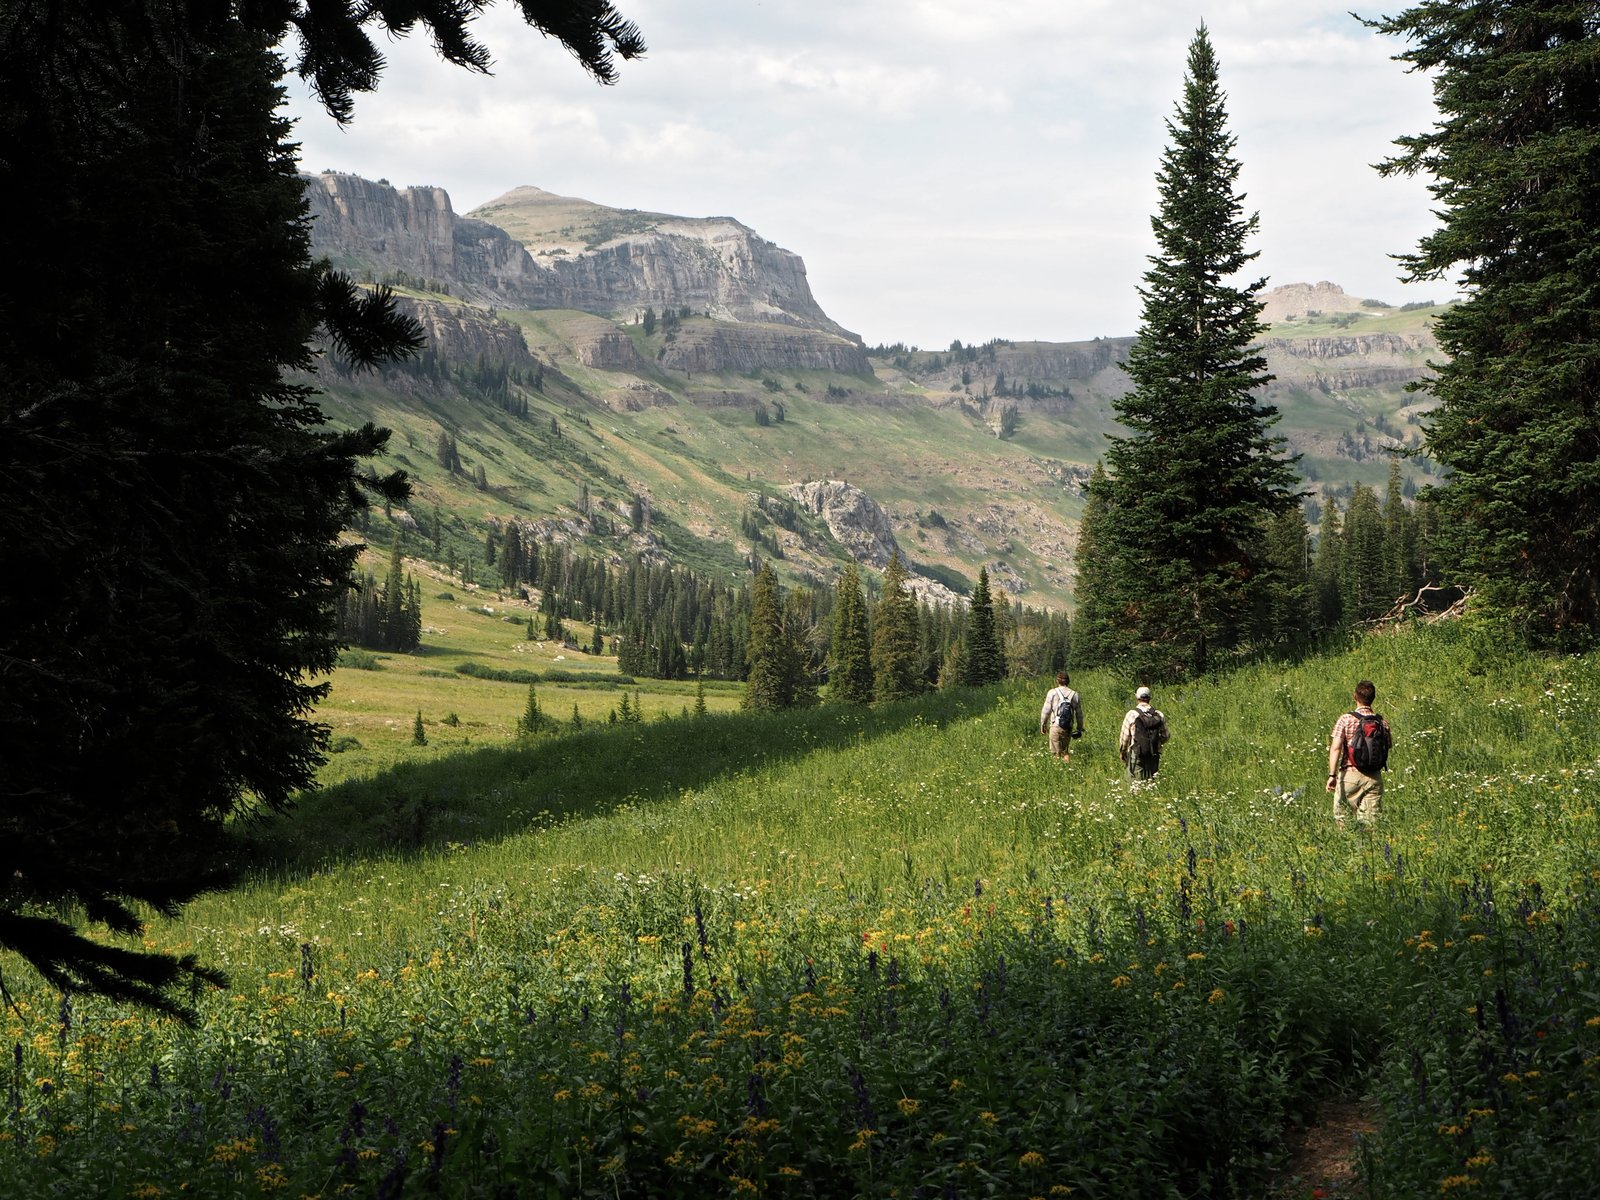 Hike back to camp. Death Canyon is full of wildlife and wild flowers. The journey is the destination. Grand Teton National Park.  Photo 1 of 1 in 31 Gifts for the Crunchy-Granola Types Who Are Always Up for an Adventure from Grand Teton Expedition